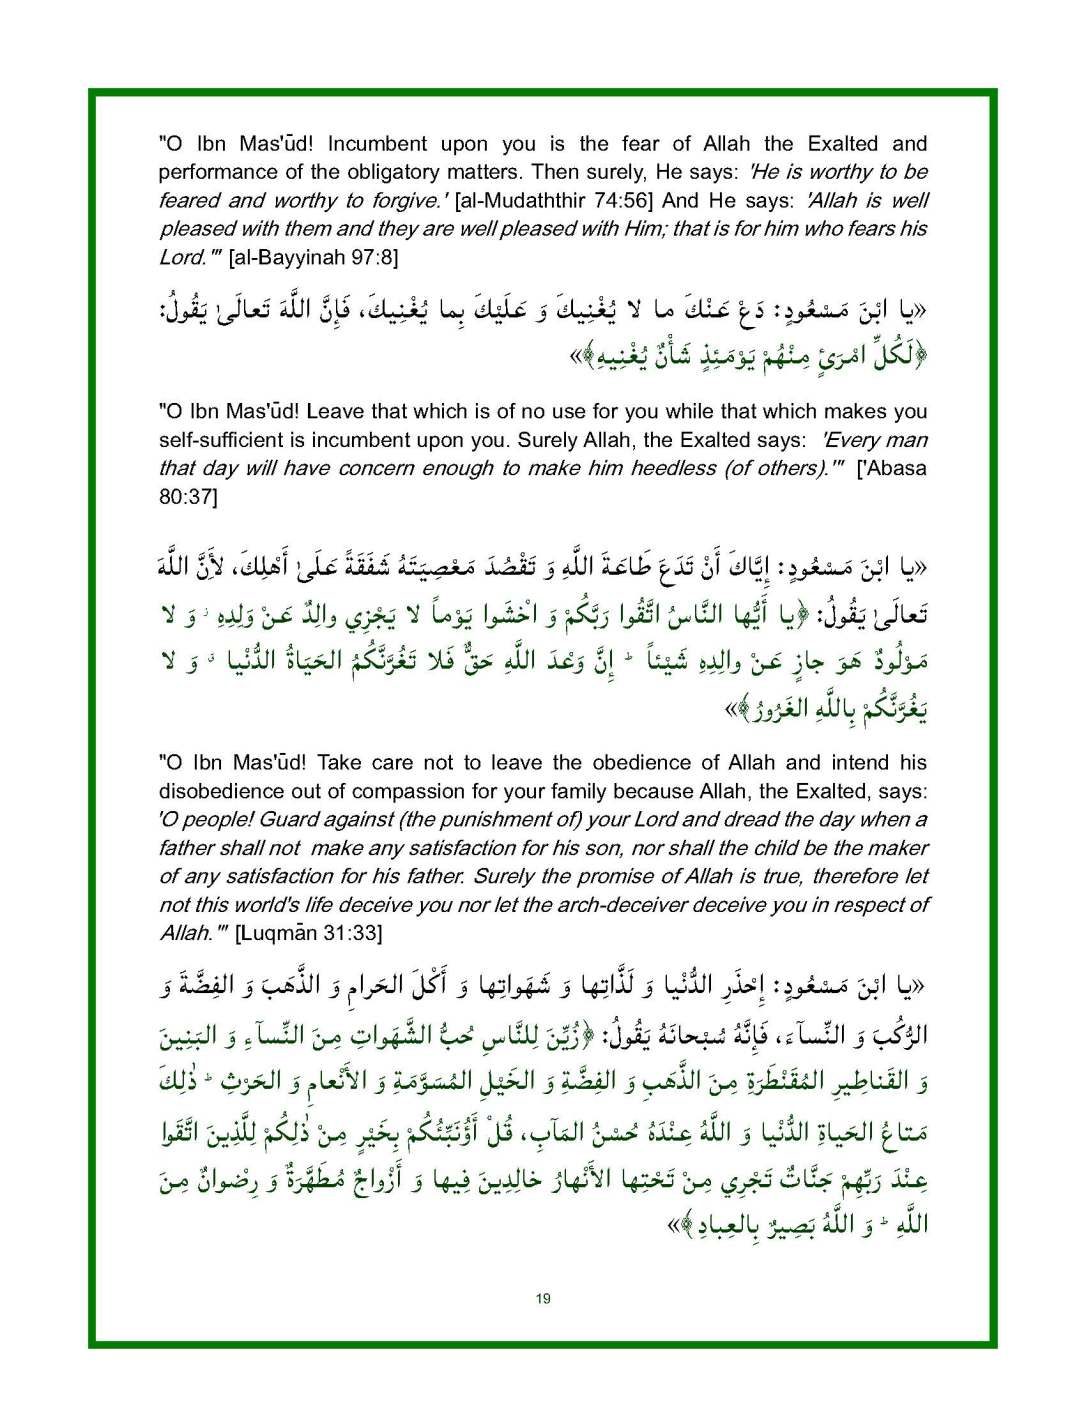 Spiritual-Advice-of-the-Messenger-of-Allah-for-Ibn-Masud-unlocked_Page_19